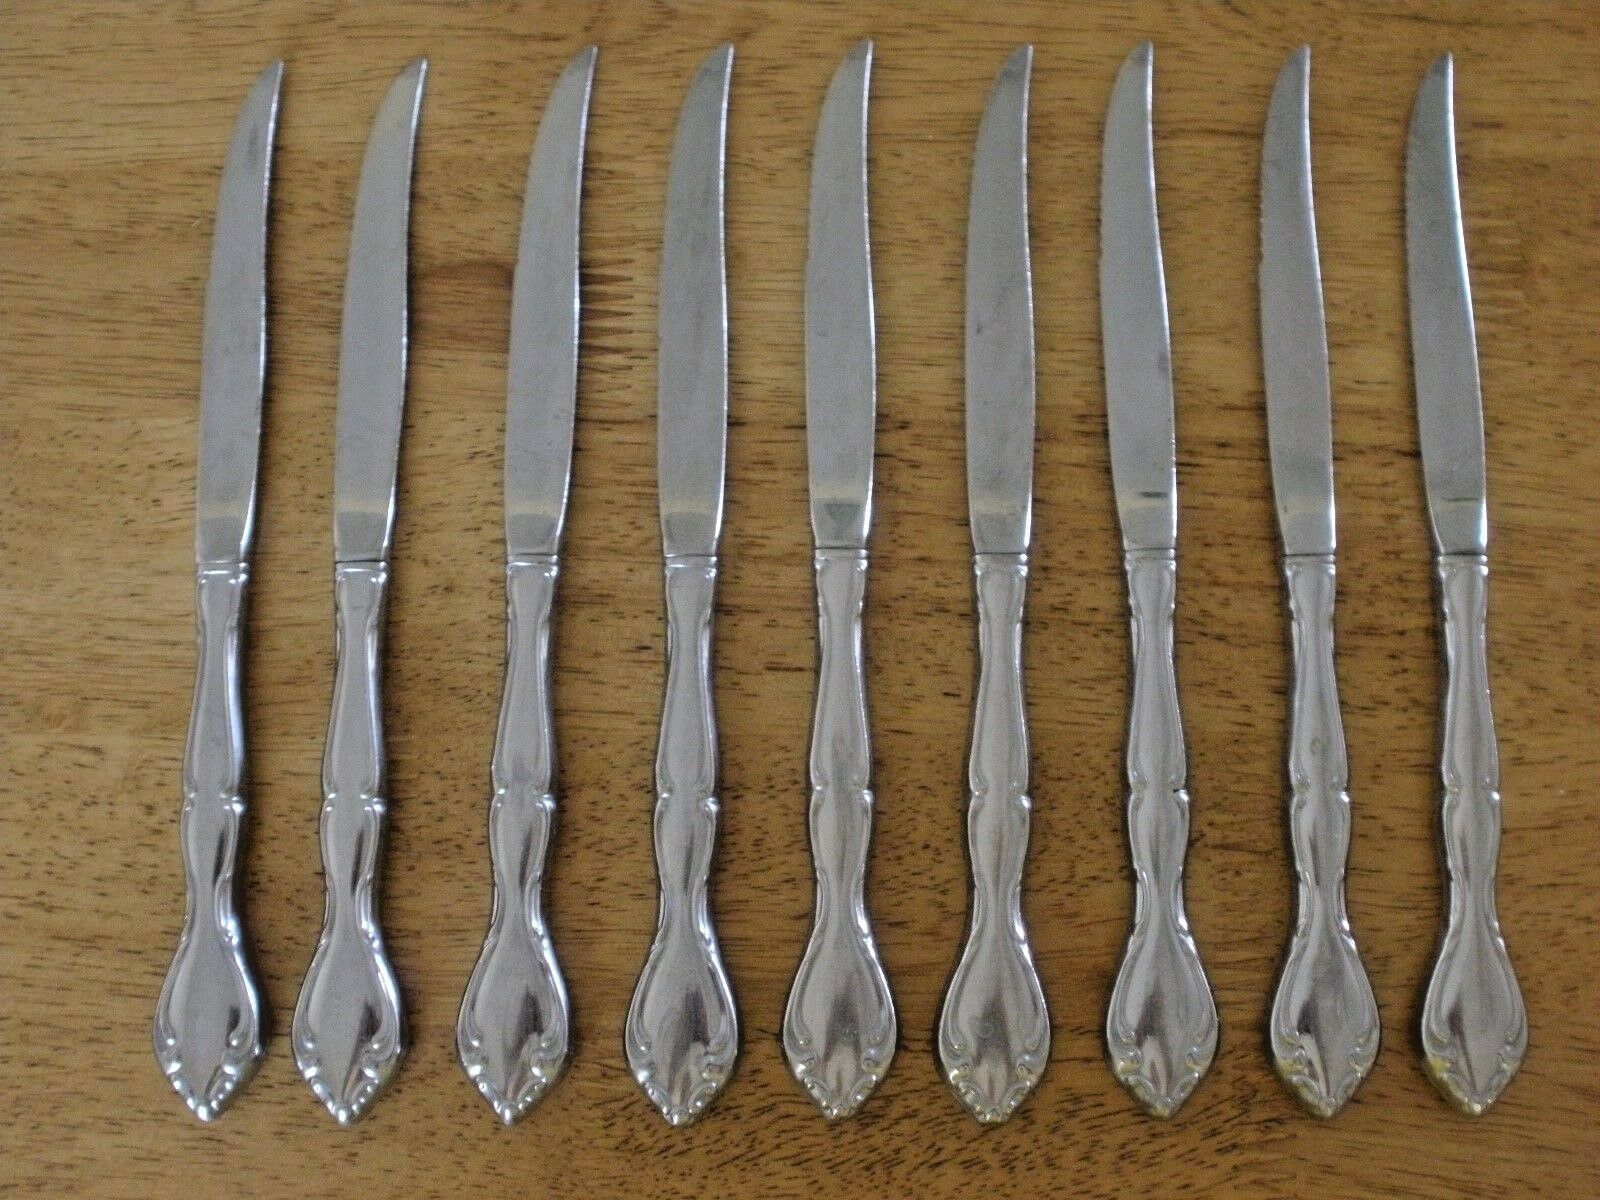 ONEIDA DELUXE USA Stainless STRATHMORE c1991 Set of 9 STEAK KNIVES 9-1 8  VG 849